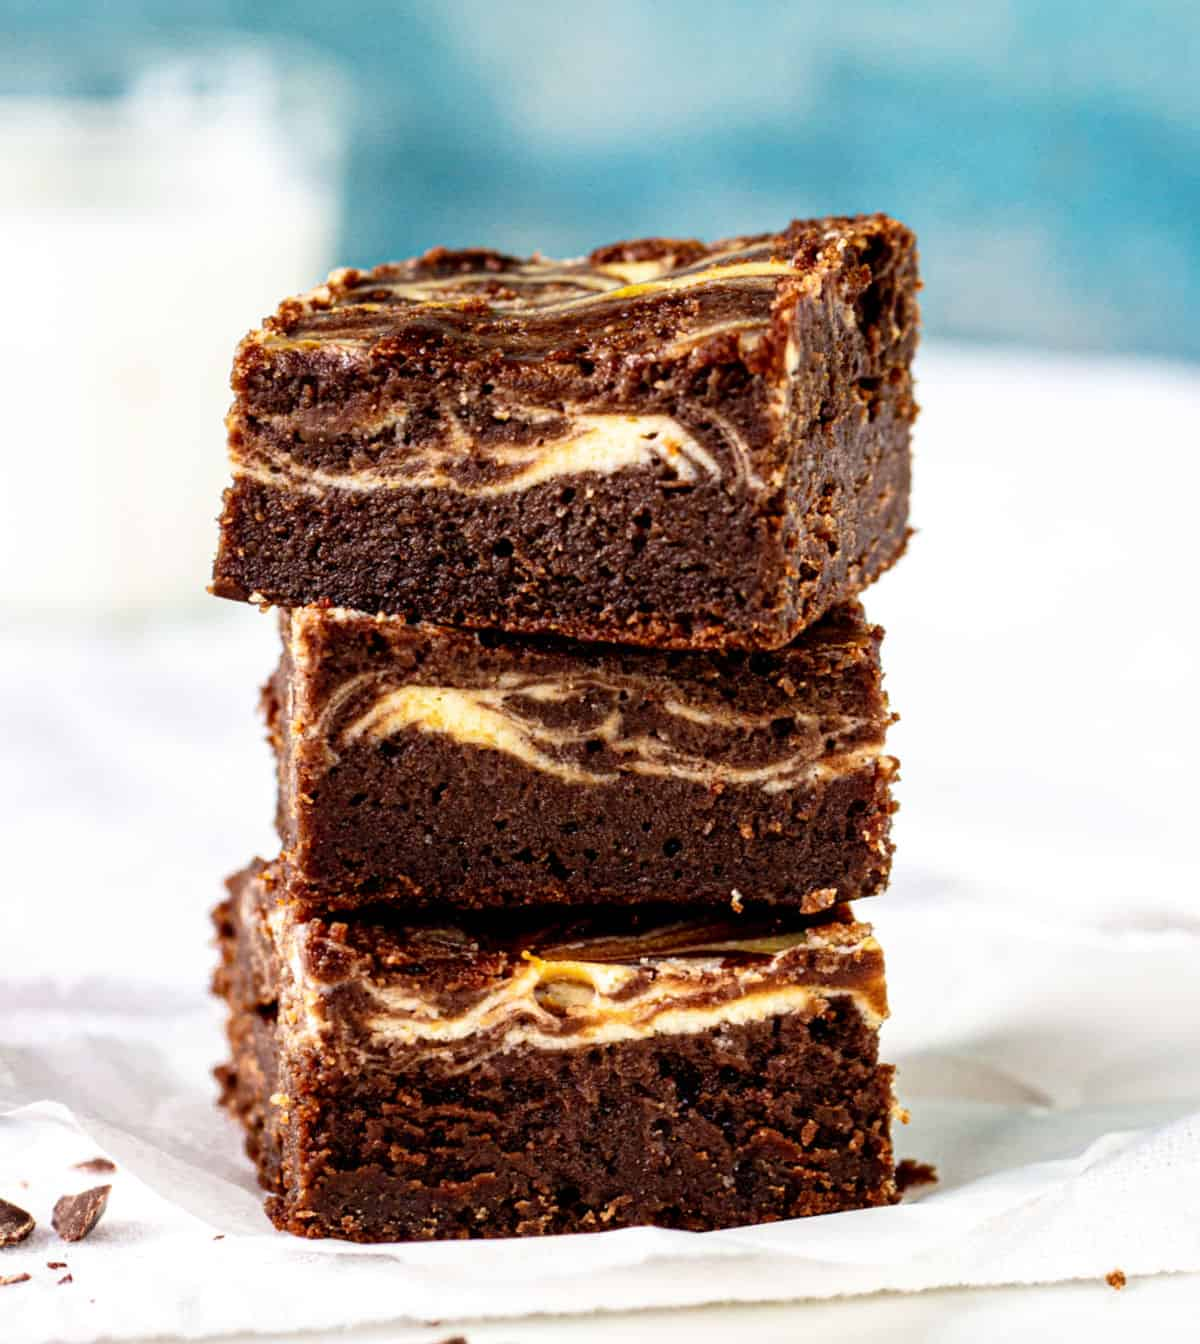 Cheesecake brownies stacked with blue and white background